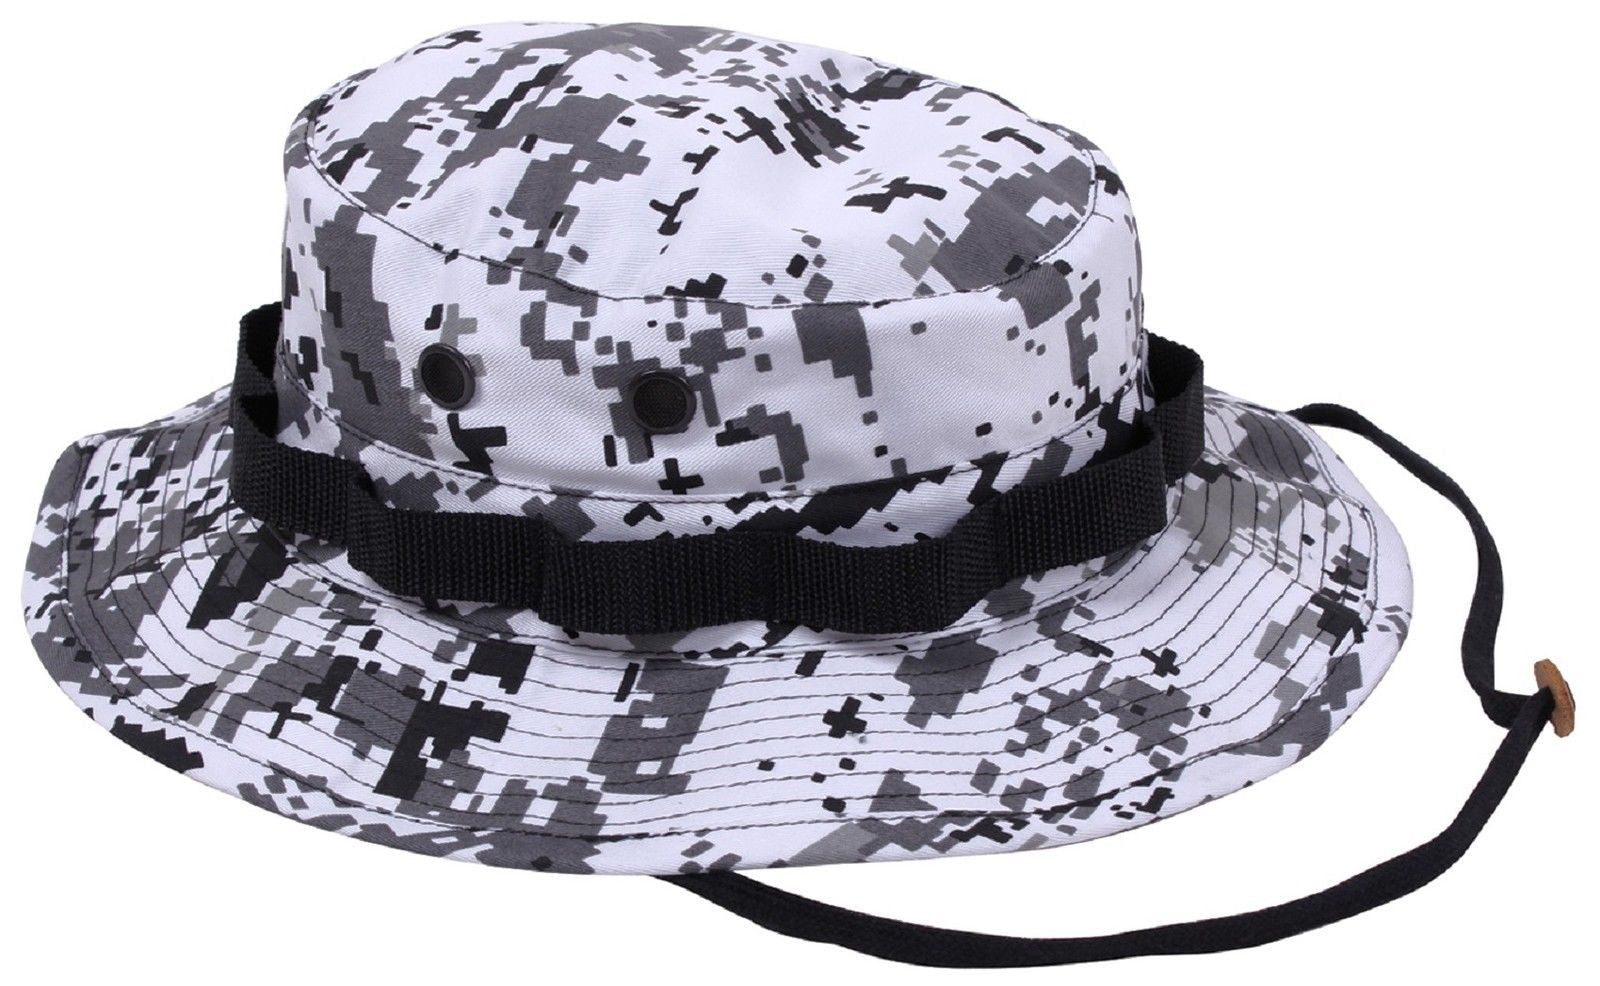 City Digital Camouflage Boonie Hat - Black   White Camo Bucket Hats ... dfc5a0be512